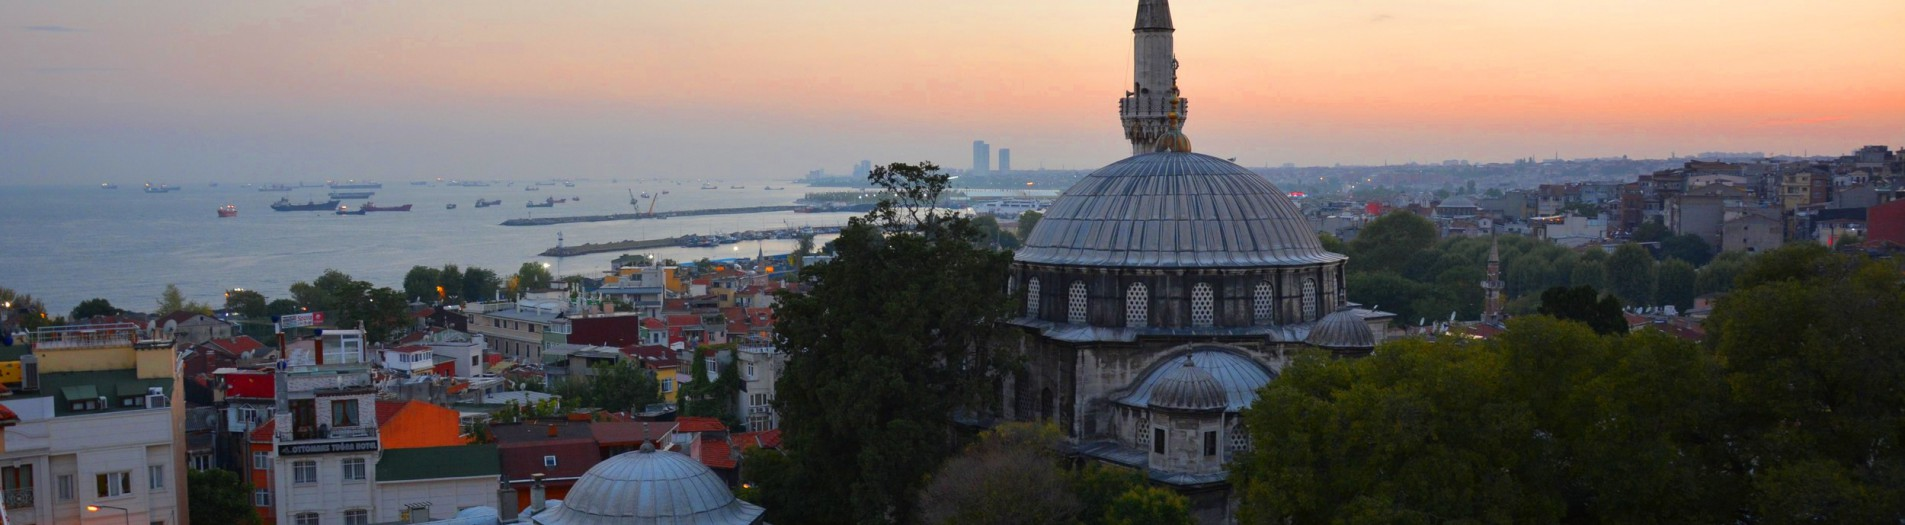 Istanbul, sunset lights